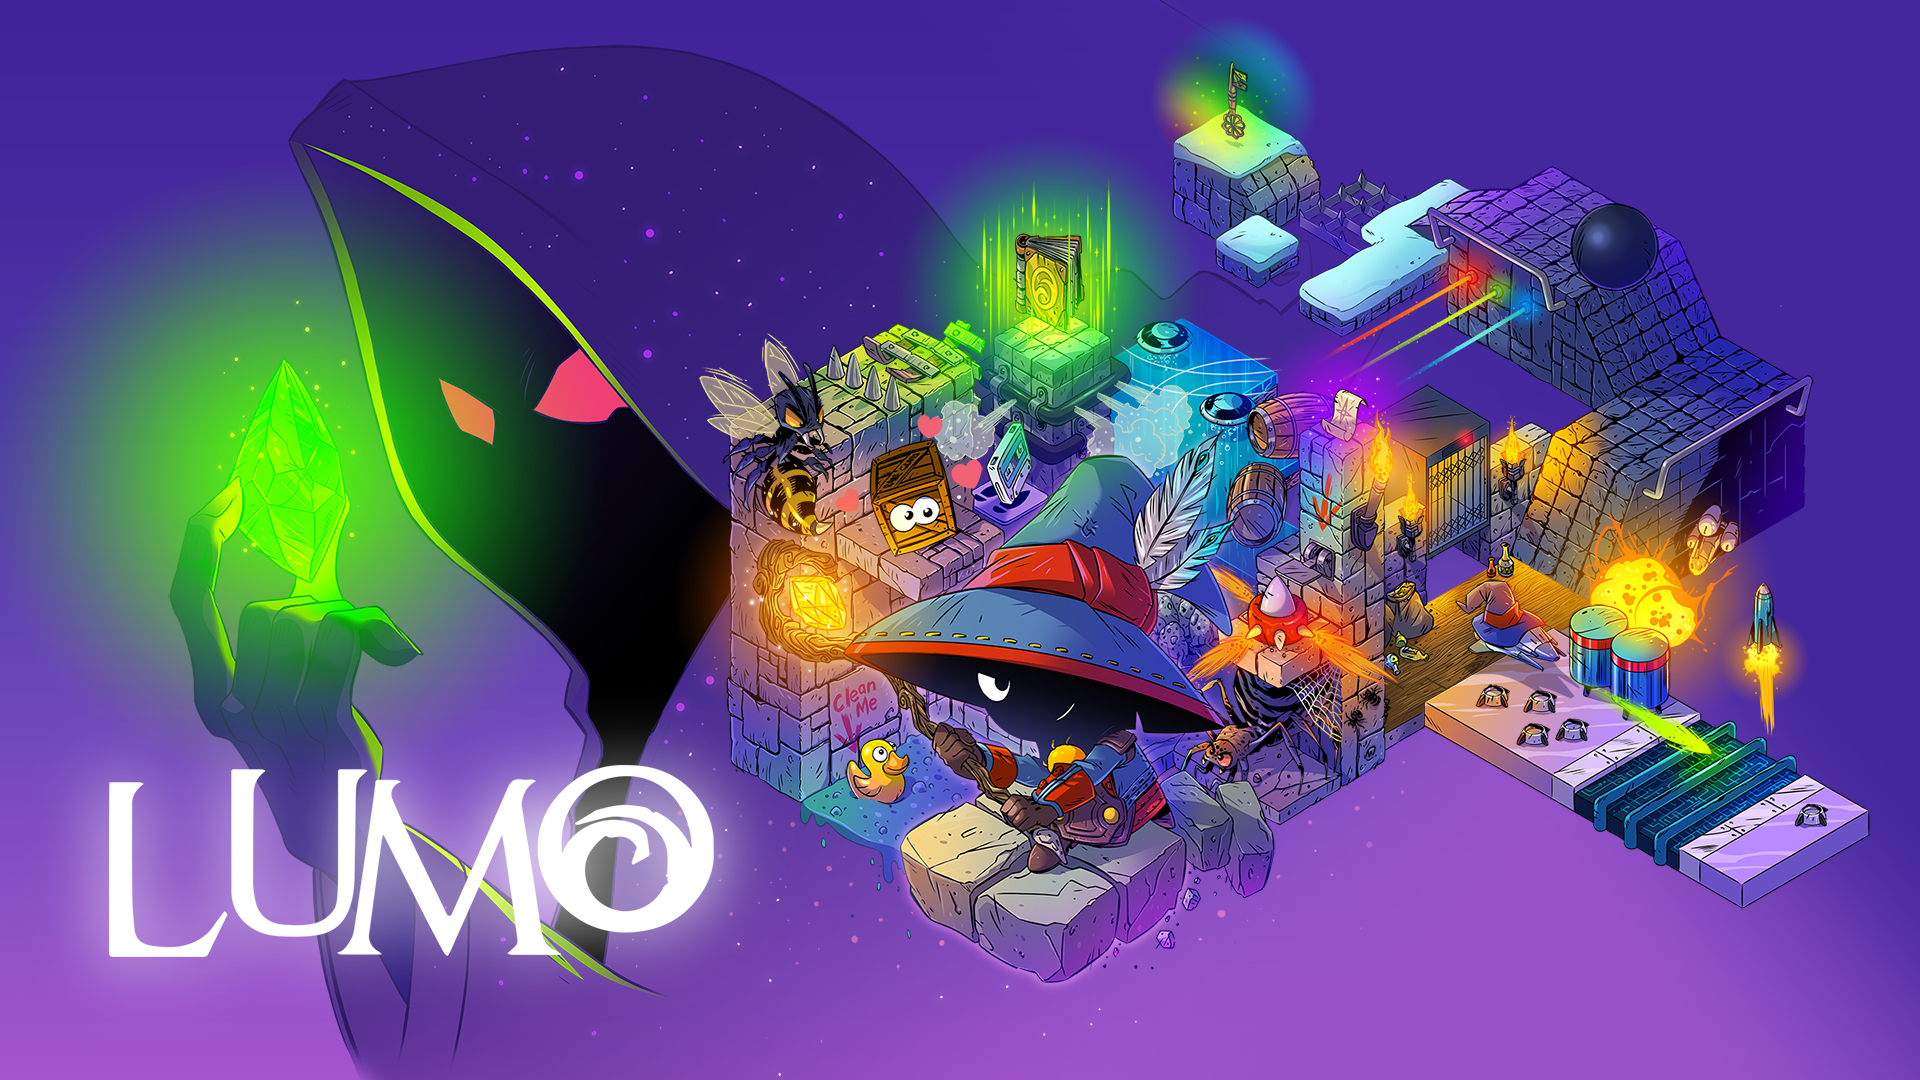 Zax on, Zax off achievement for Lumo on Xbox One